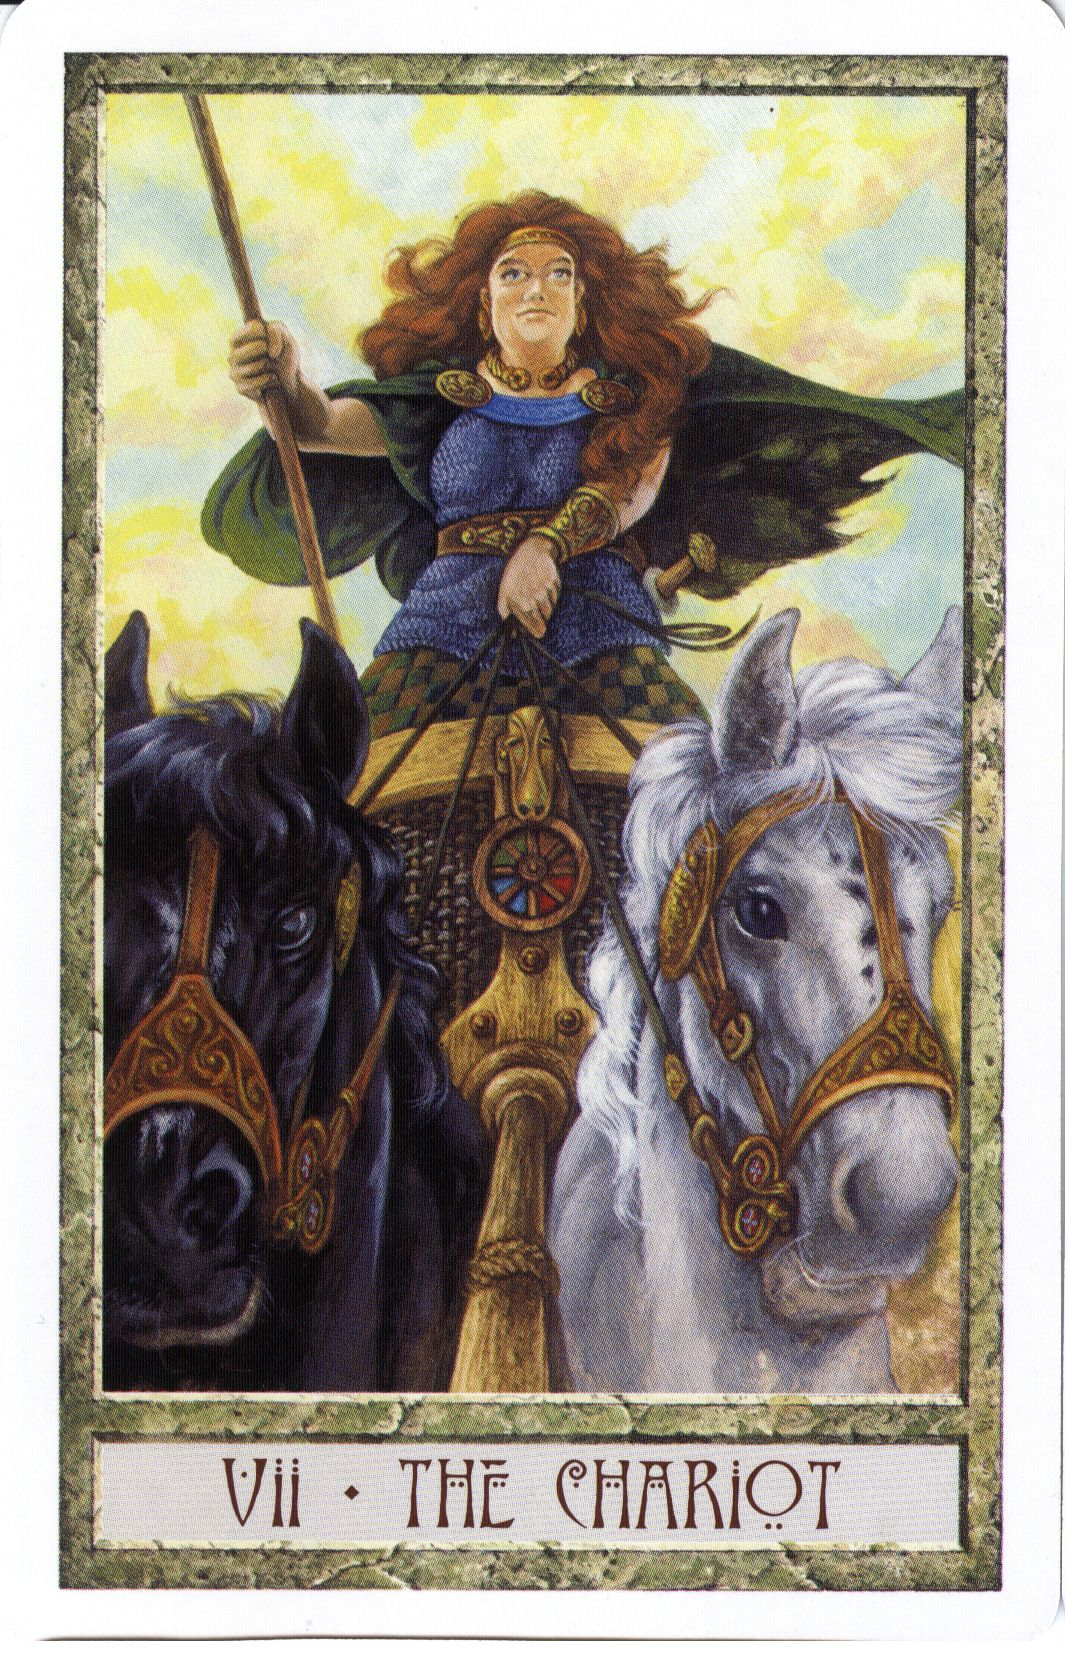 VII  The Chariot - Druidcraft Tarot by Stephanie and Philip